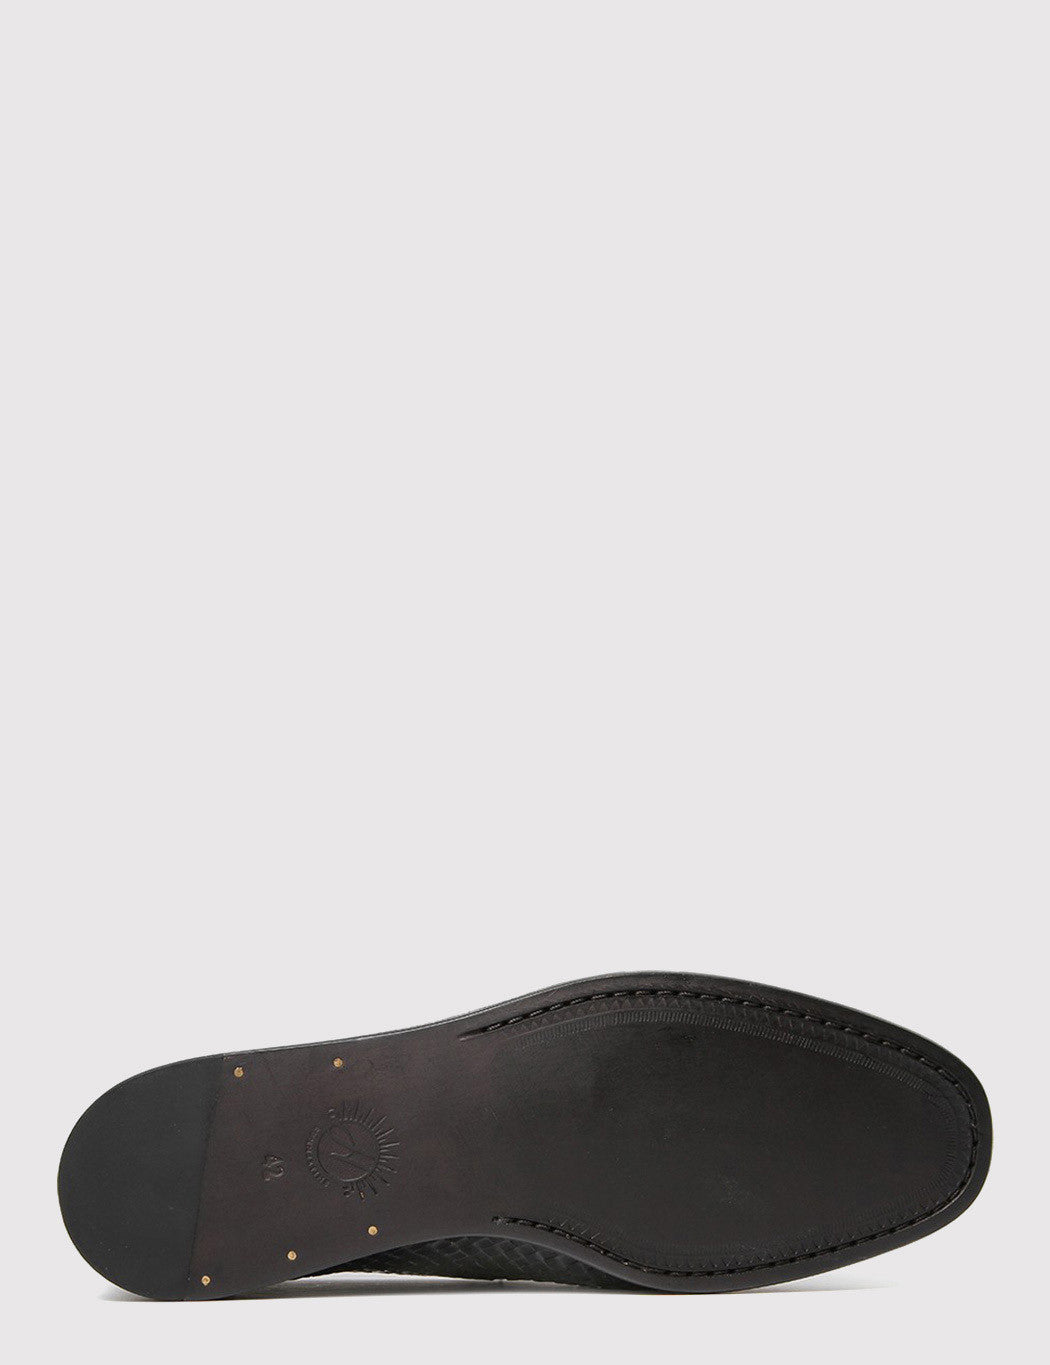 Hudson iPanema Weave Slip-on Shoes - Black